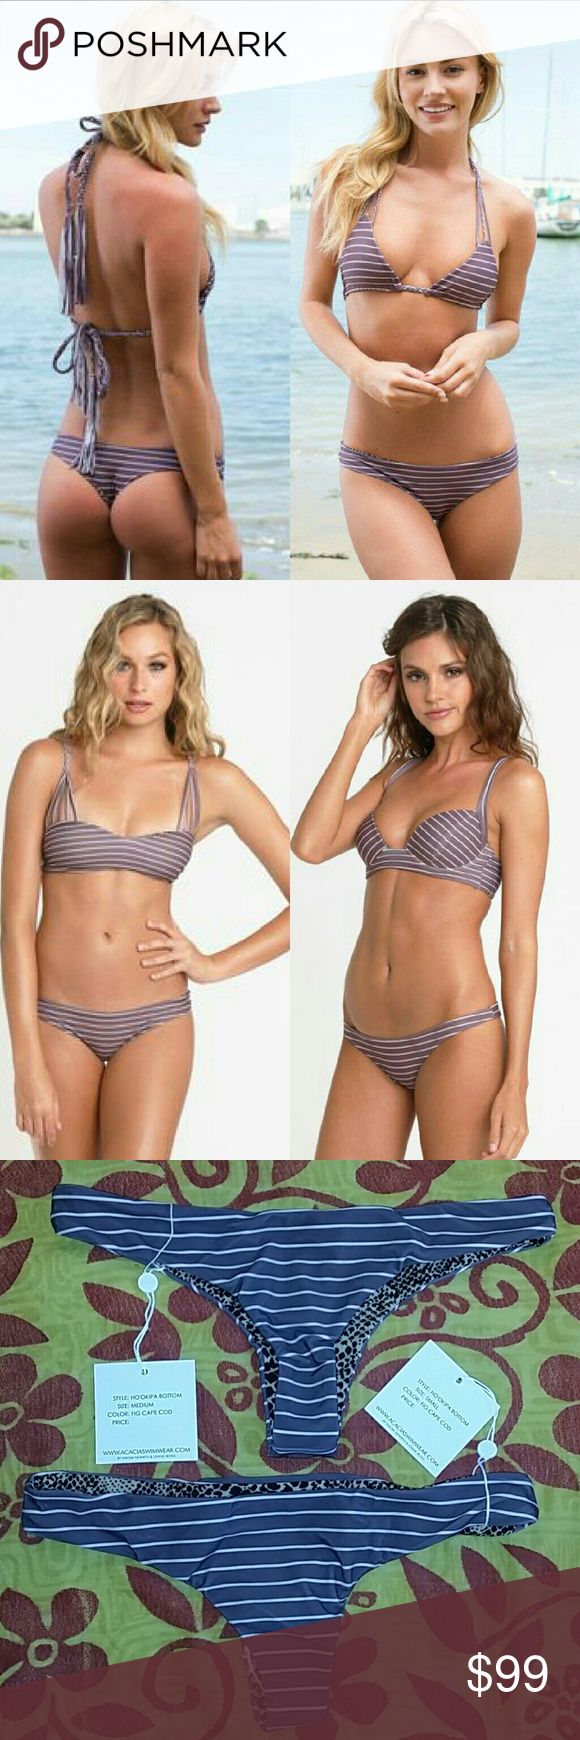 New acacia ho'okipa fig cape cod bikini hookipa bo Brand new with tag & hygienic protection strip. Ho'okipa thong bikini bottom in fig cape cod stripe by acacia swimwear. I have both sizes Small and Medium available NWT. The hookipa is acacia's signature cheeky cut. Fig purple brown background with nude naked stripes. No trade please. The price is firm. Price reflects high percentage posh commission fees acacia swimwear Swim Bikinis